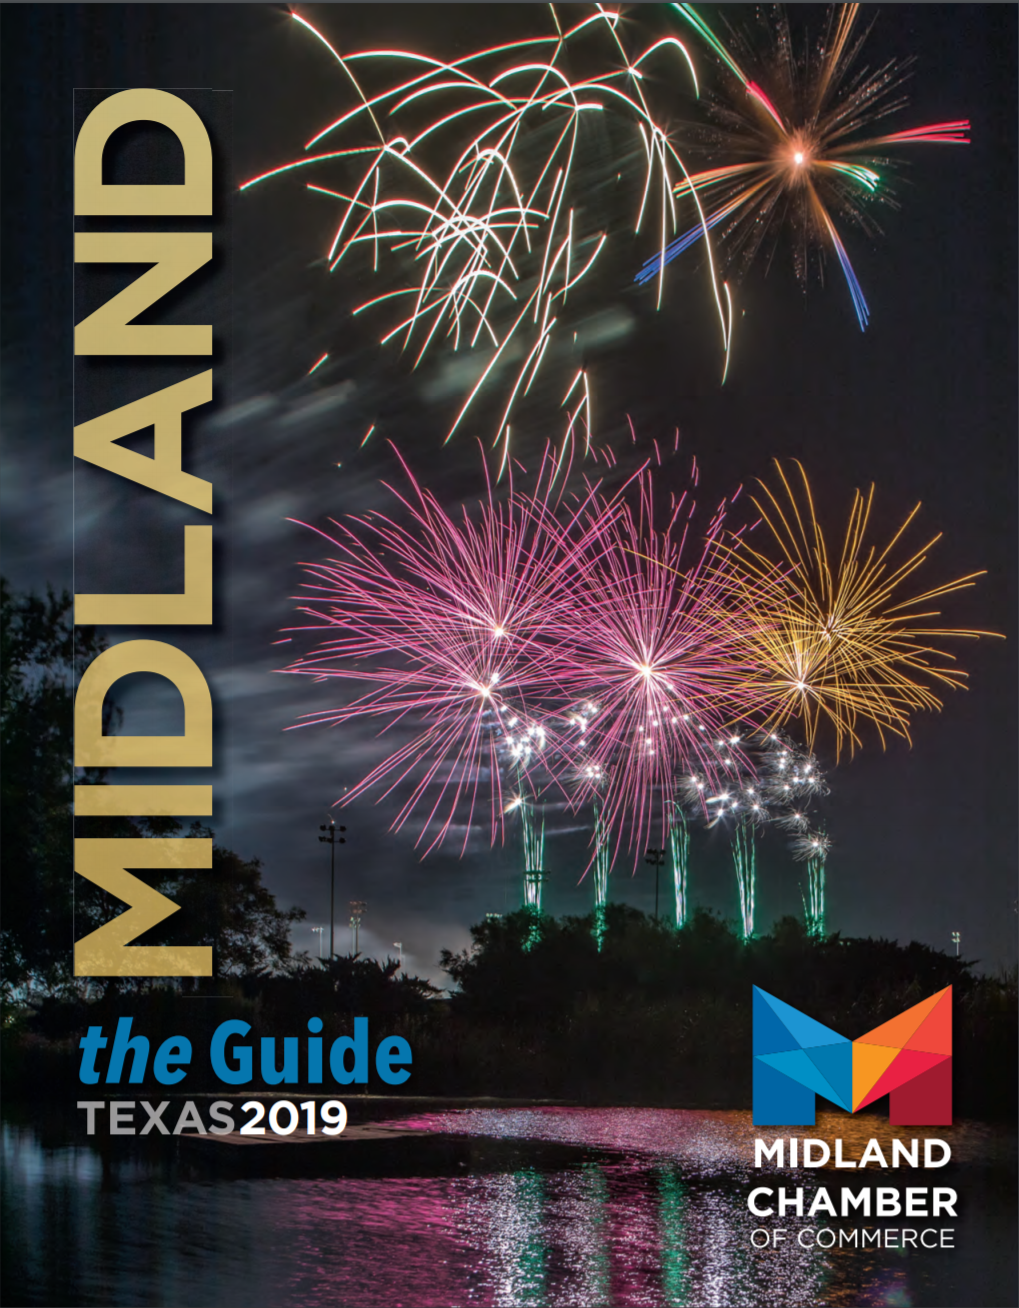 2019 Midland Guide cover photo